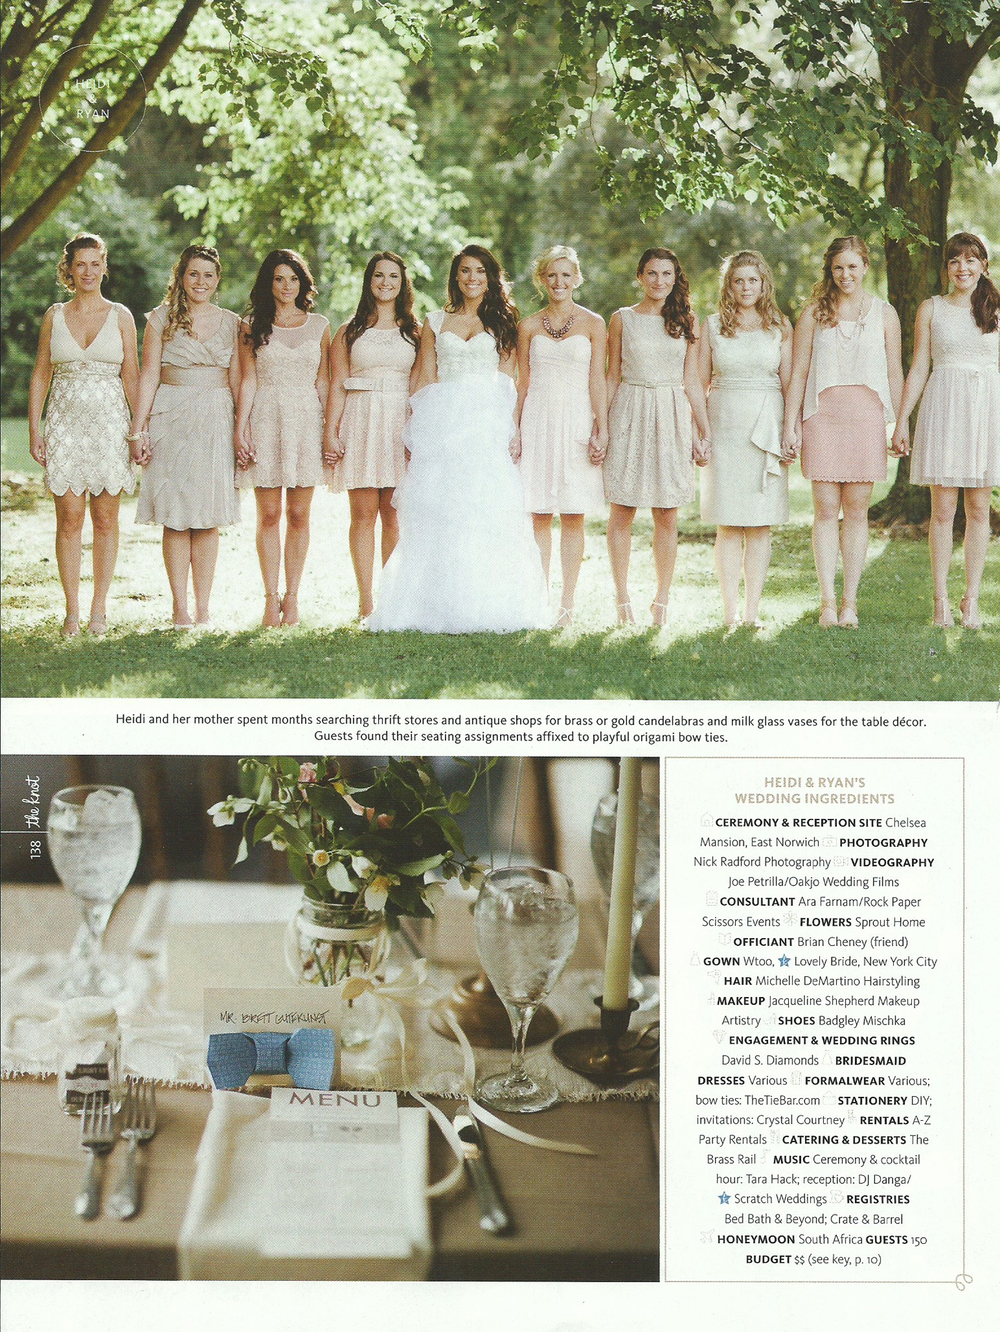 blush-bridesmaid-dresses-bow-tie-placecard